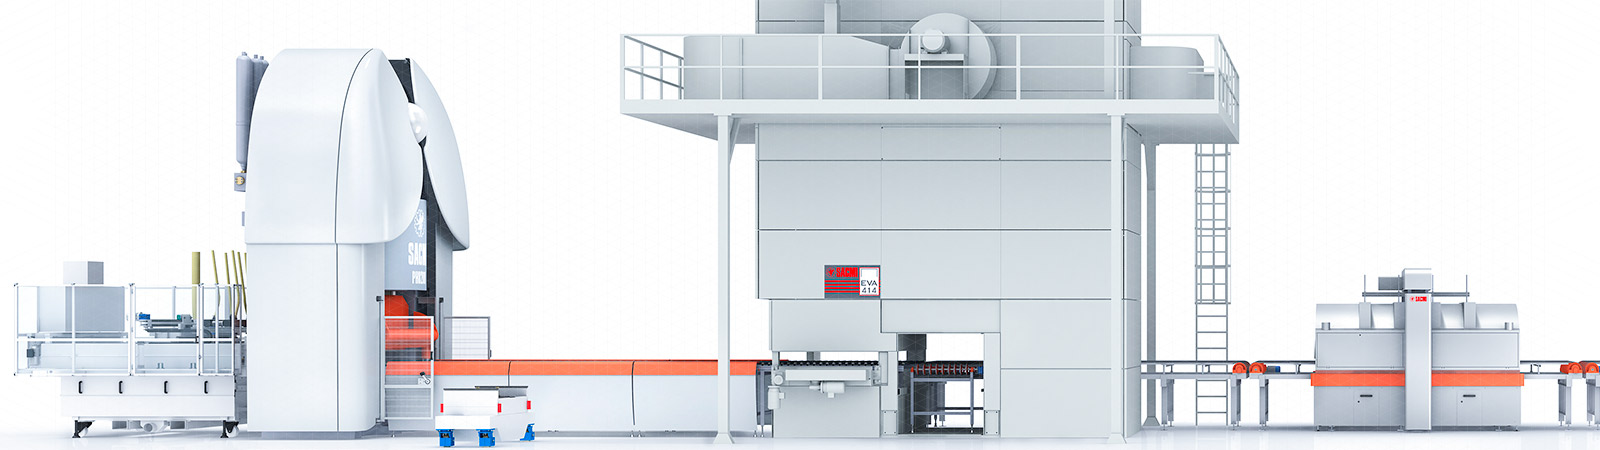 COMPLETE MACHINES AND SYSTEMS FOR CERAMIC TILES AND SLABS